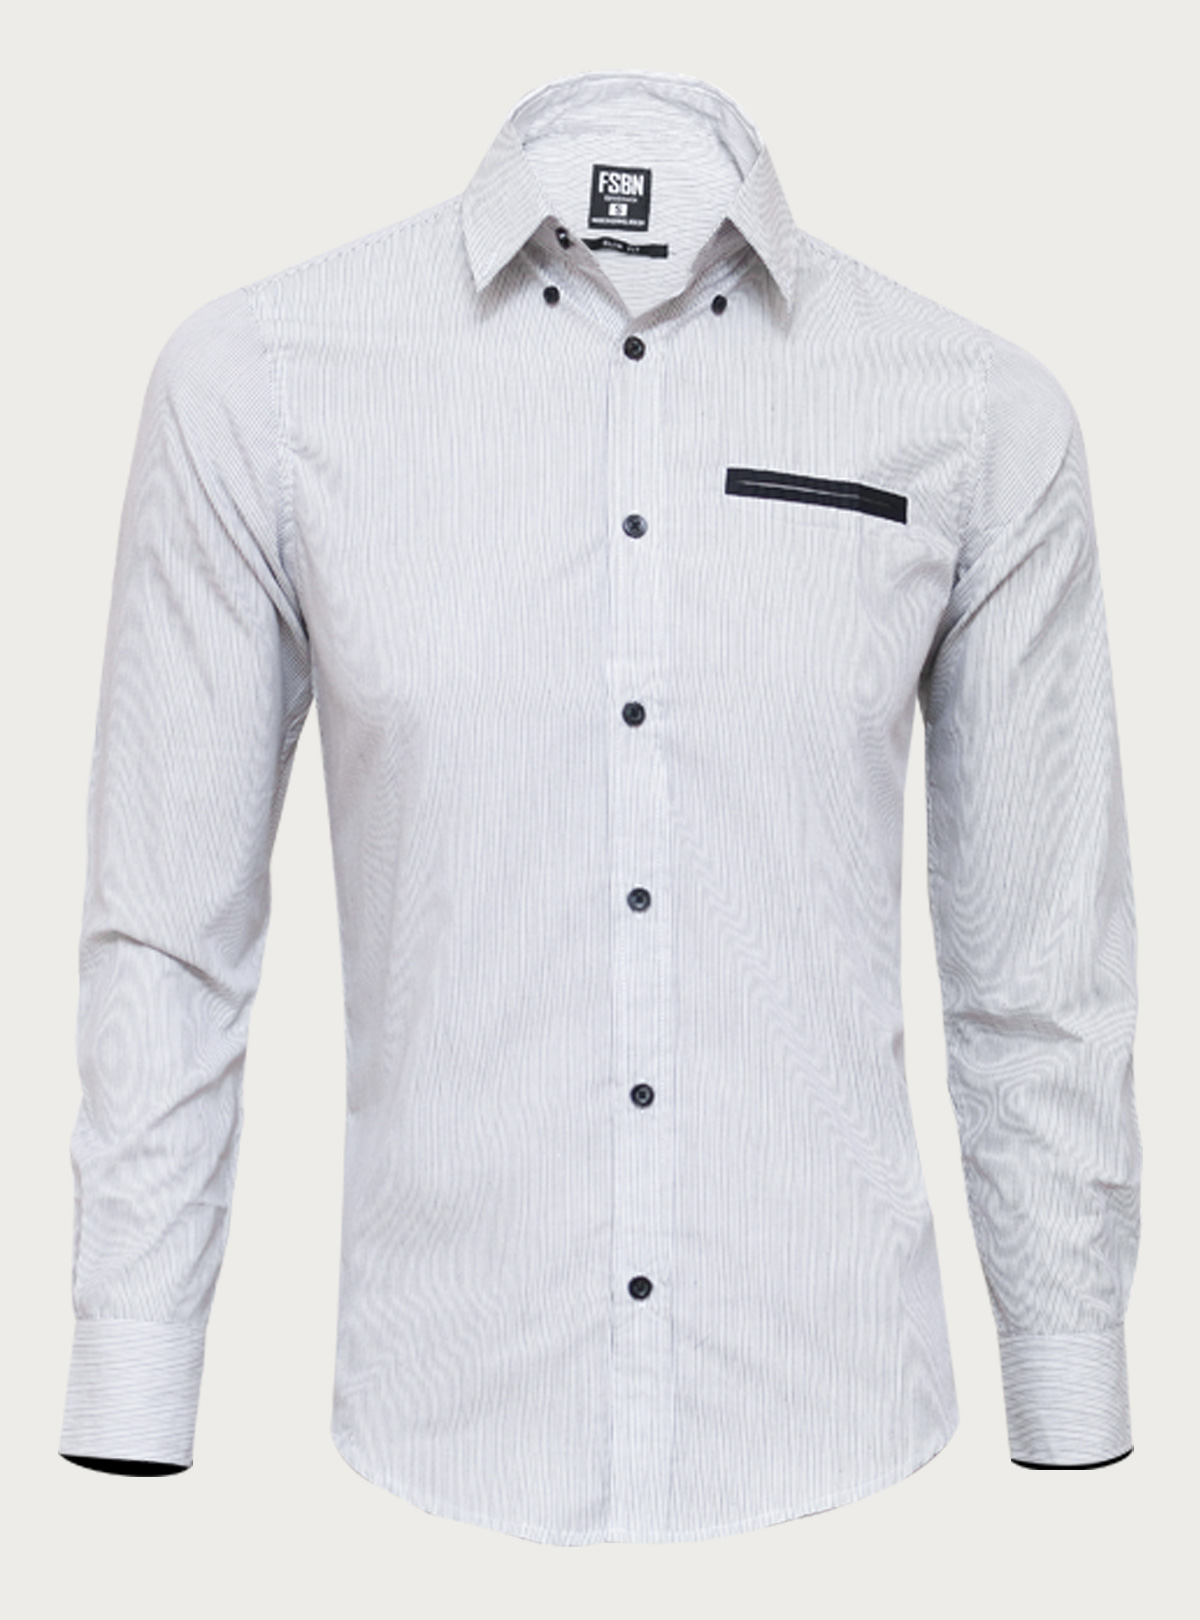 Stylish Casual Shirt